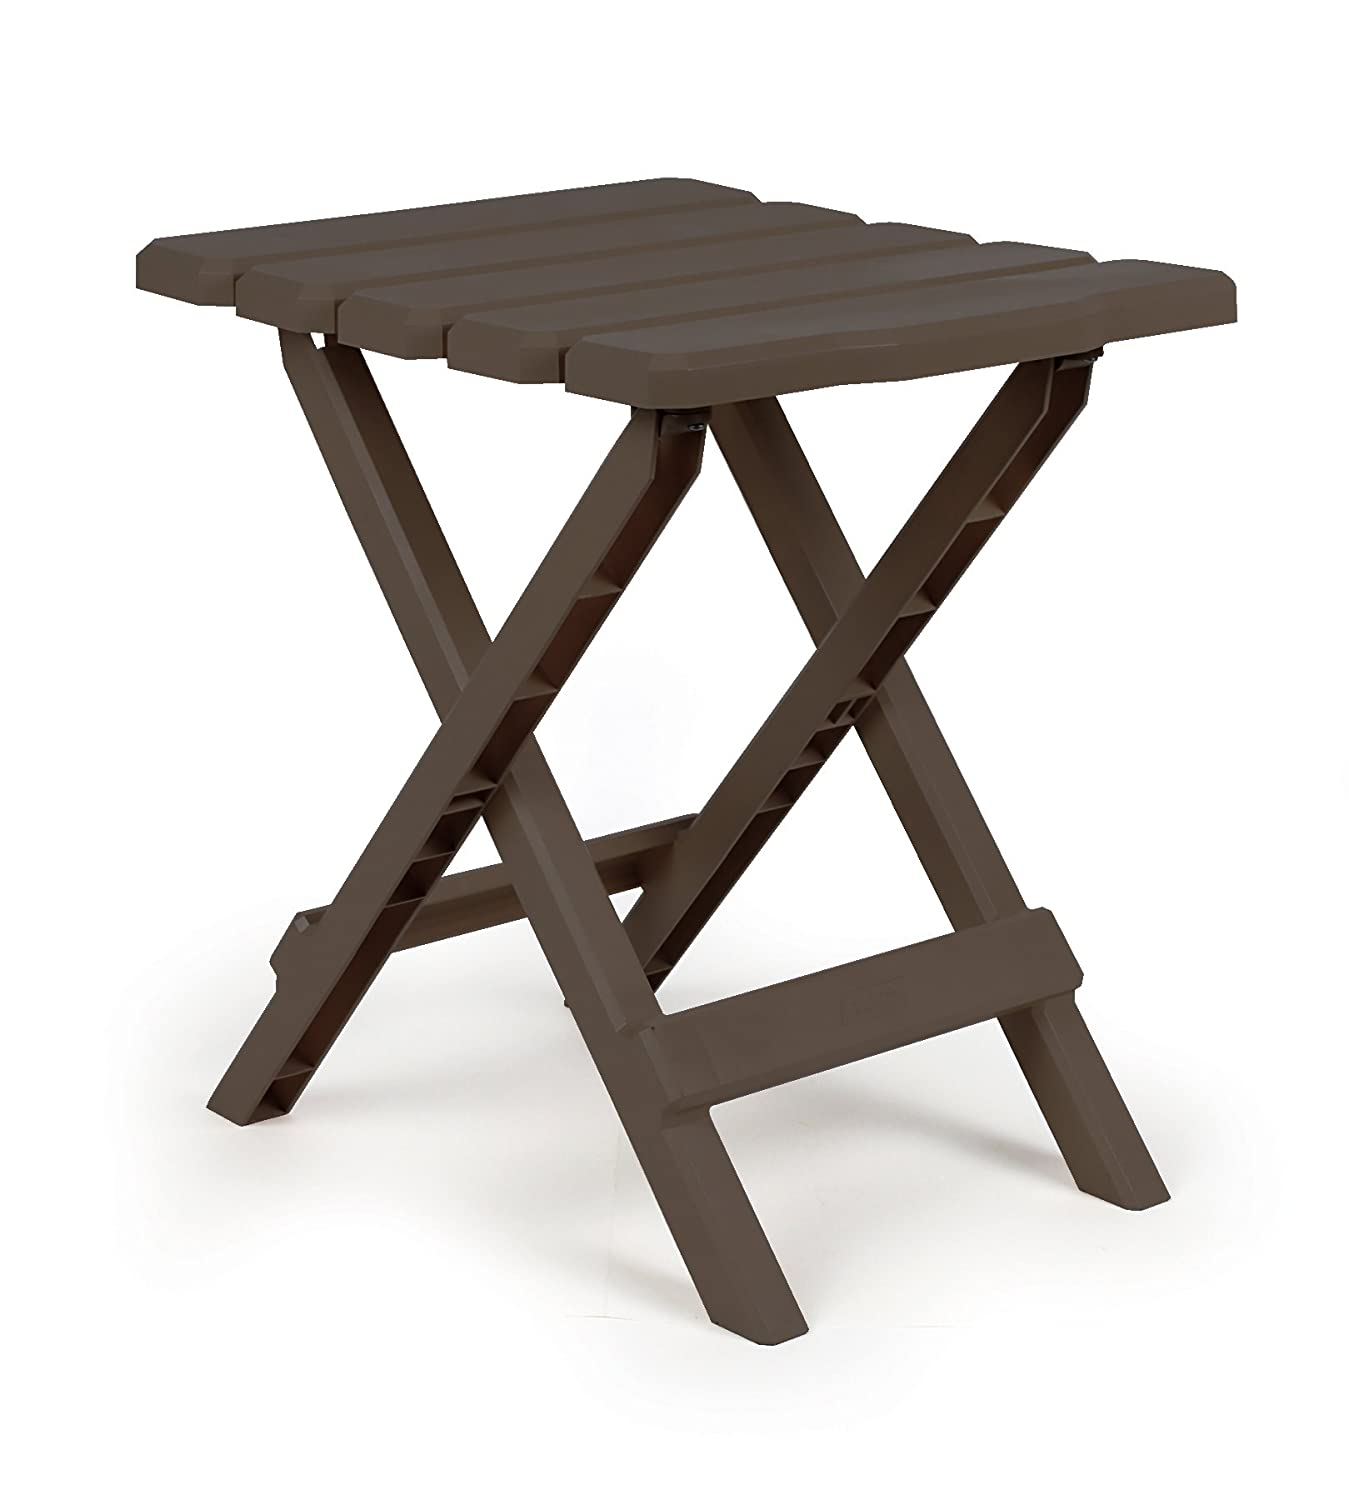 Amazon.com: Camco Adirondack Portable Outdoor Folding Side Table, Perfect  For The Beach, Camping, Picnics, Cookouts And More, Weatherproof And Rust  ...